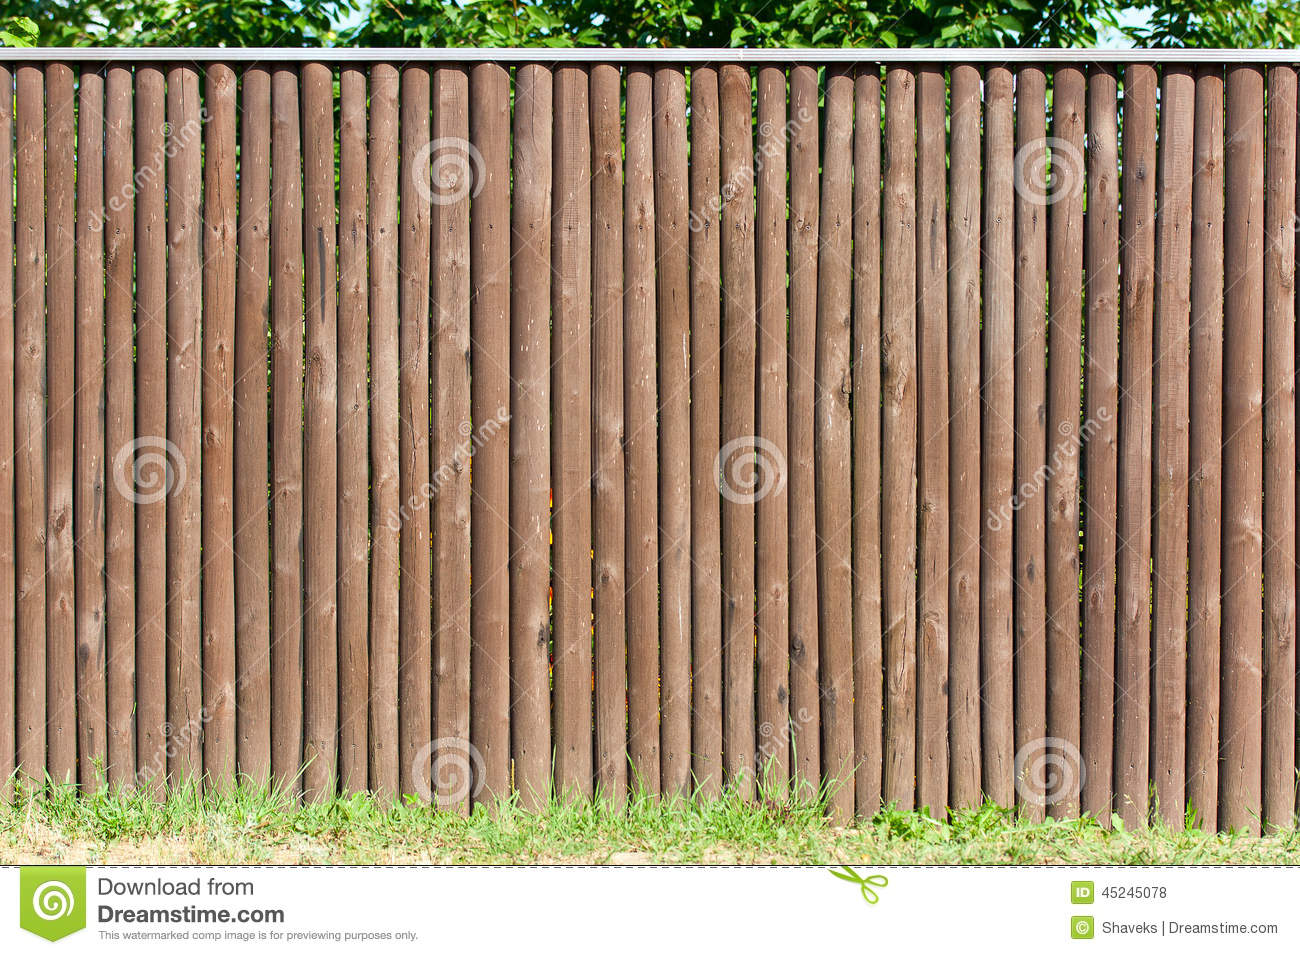 Solid Wood Picket Fence Stock Photo